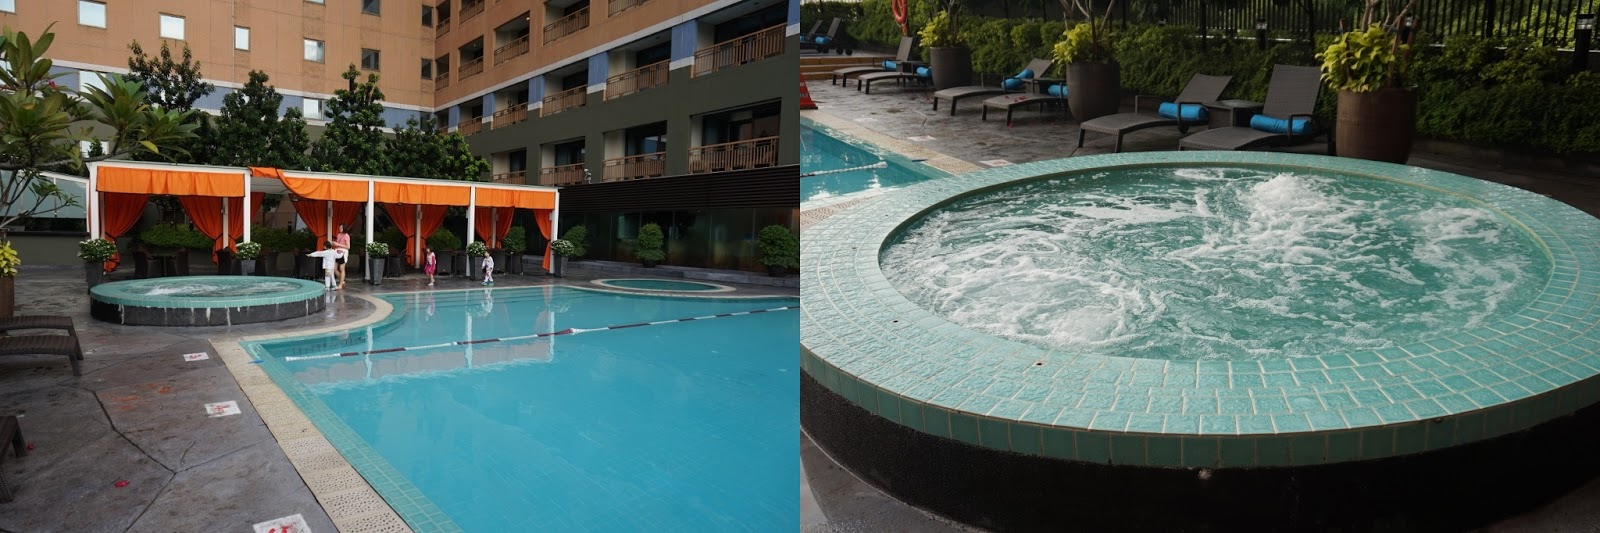 Our Family Staycation @ Sunway Putra Hotel, Kuala Lumpur